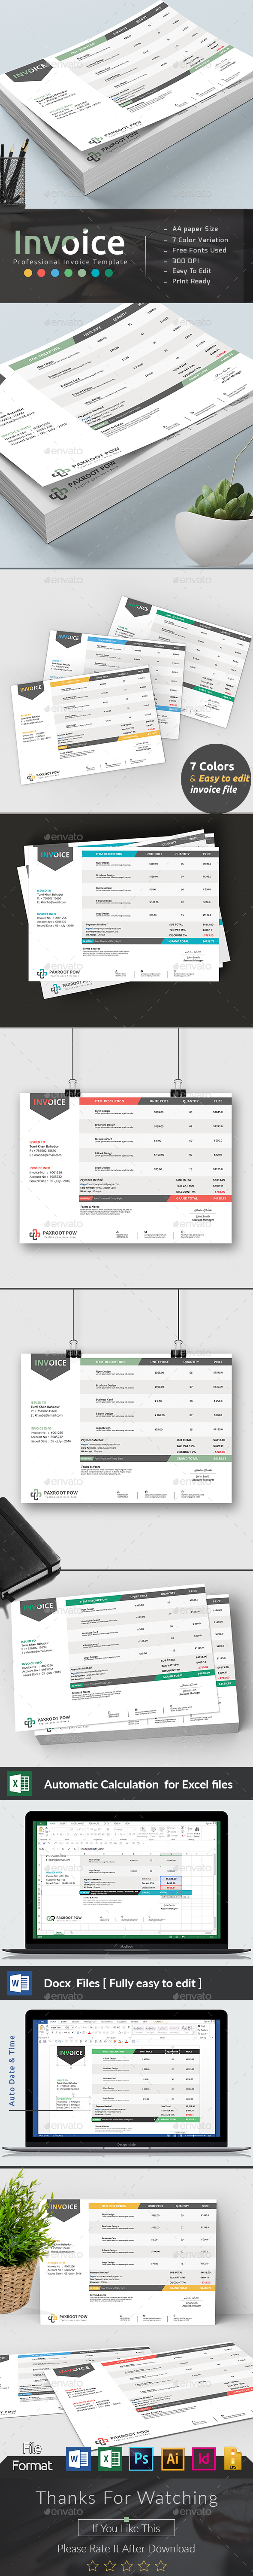 Invoice Excel by Ancient Ego   GraphicRiver Invoice Excel   Proposals   Invoices Stationery